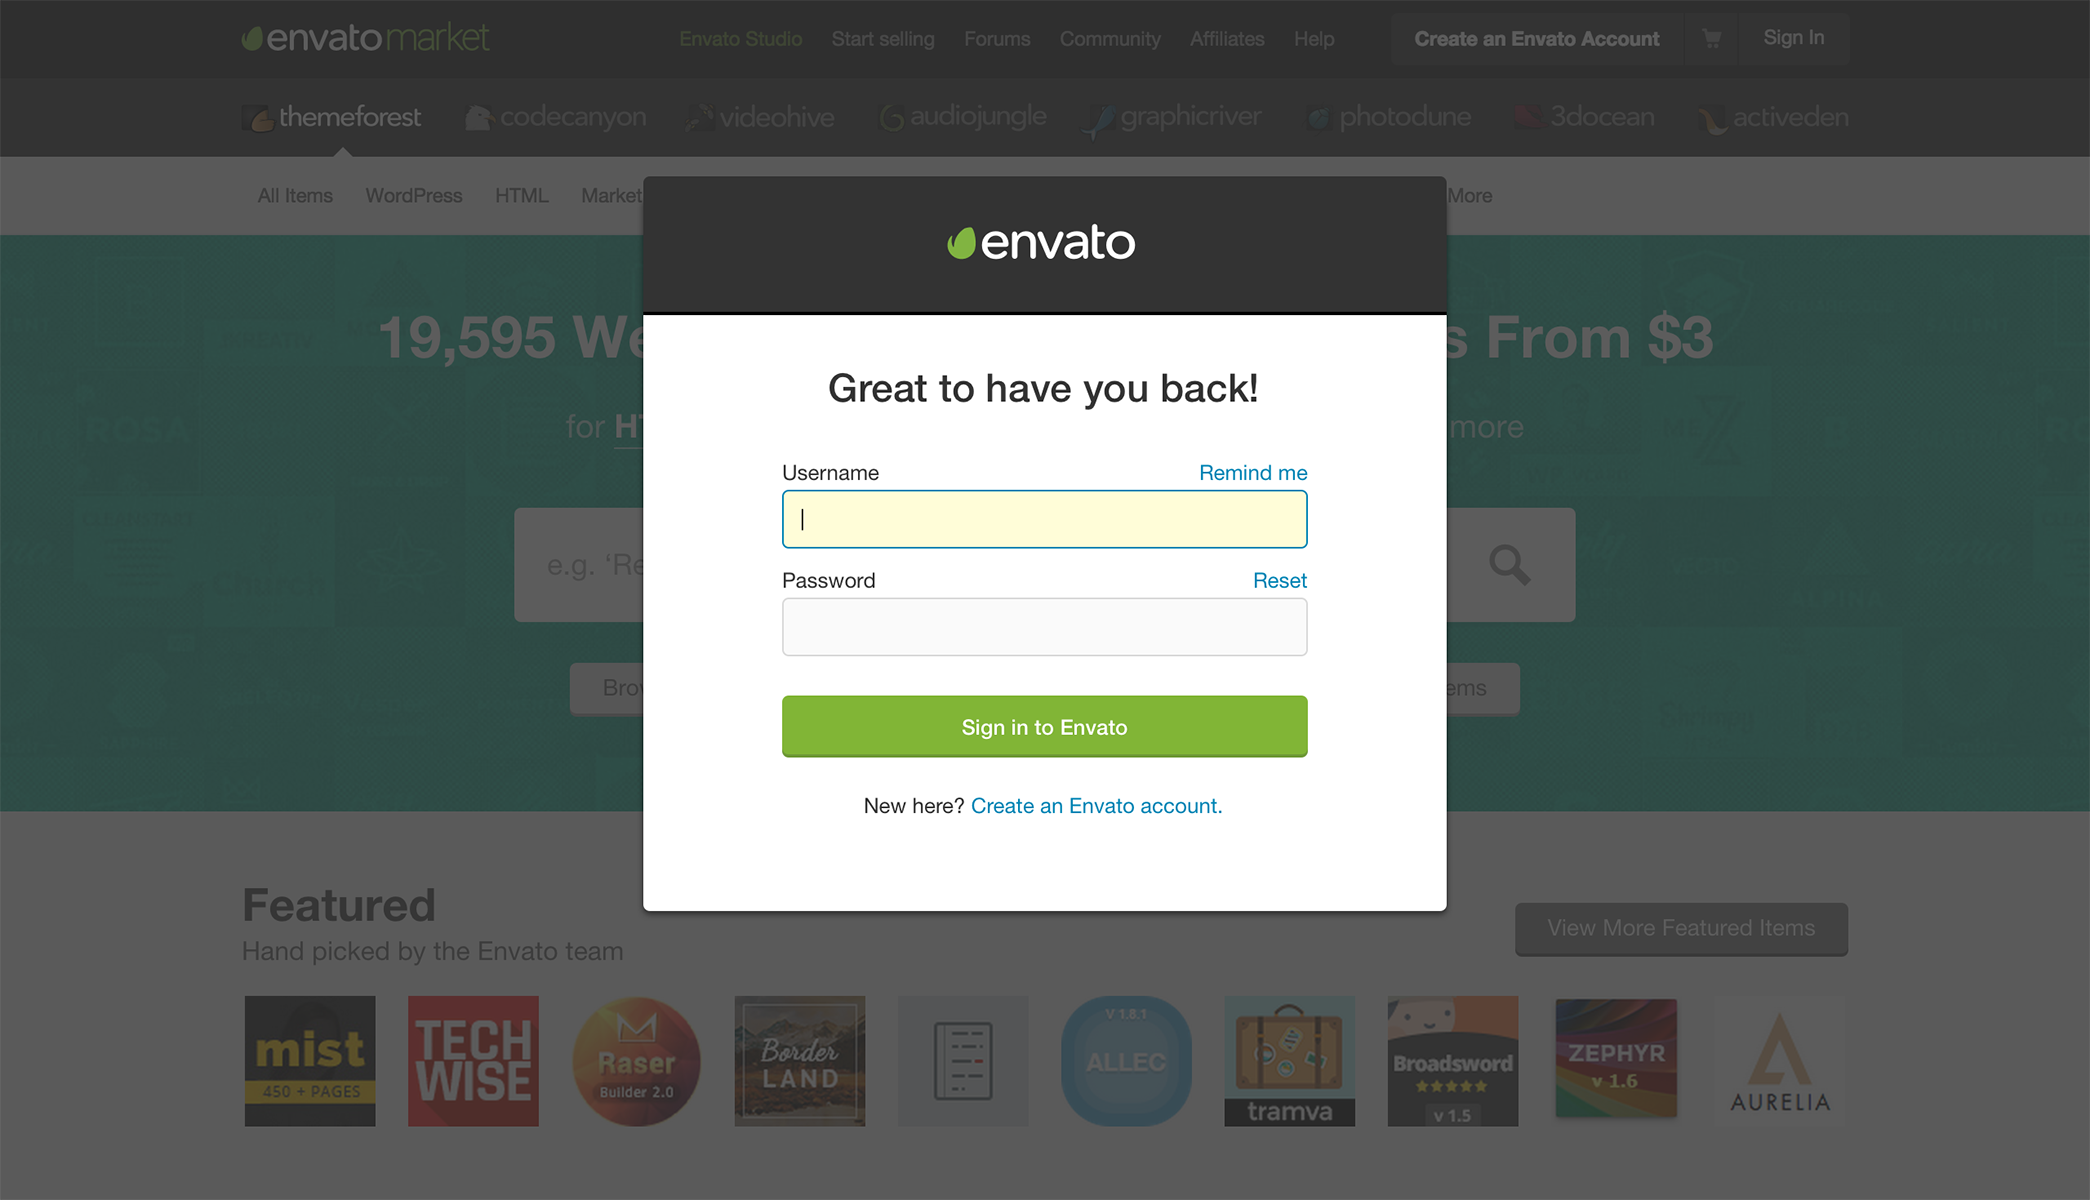 Envato sign up